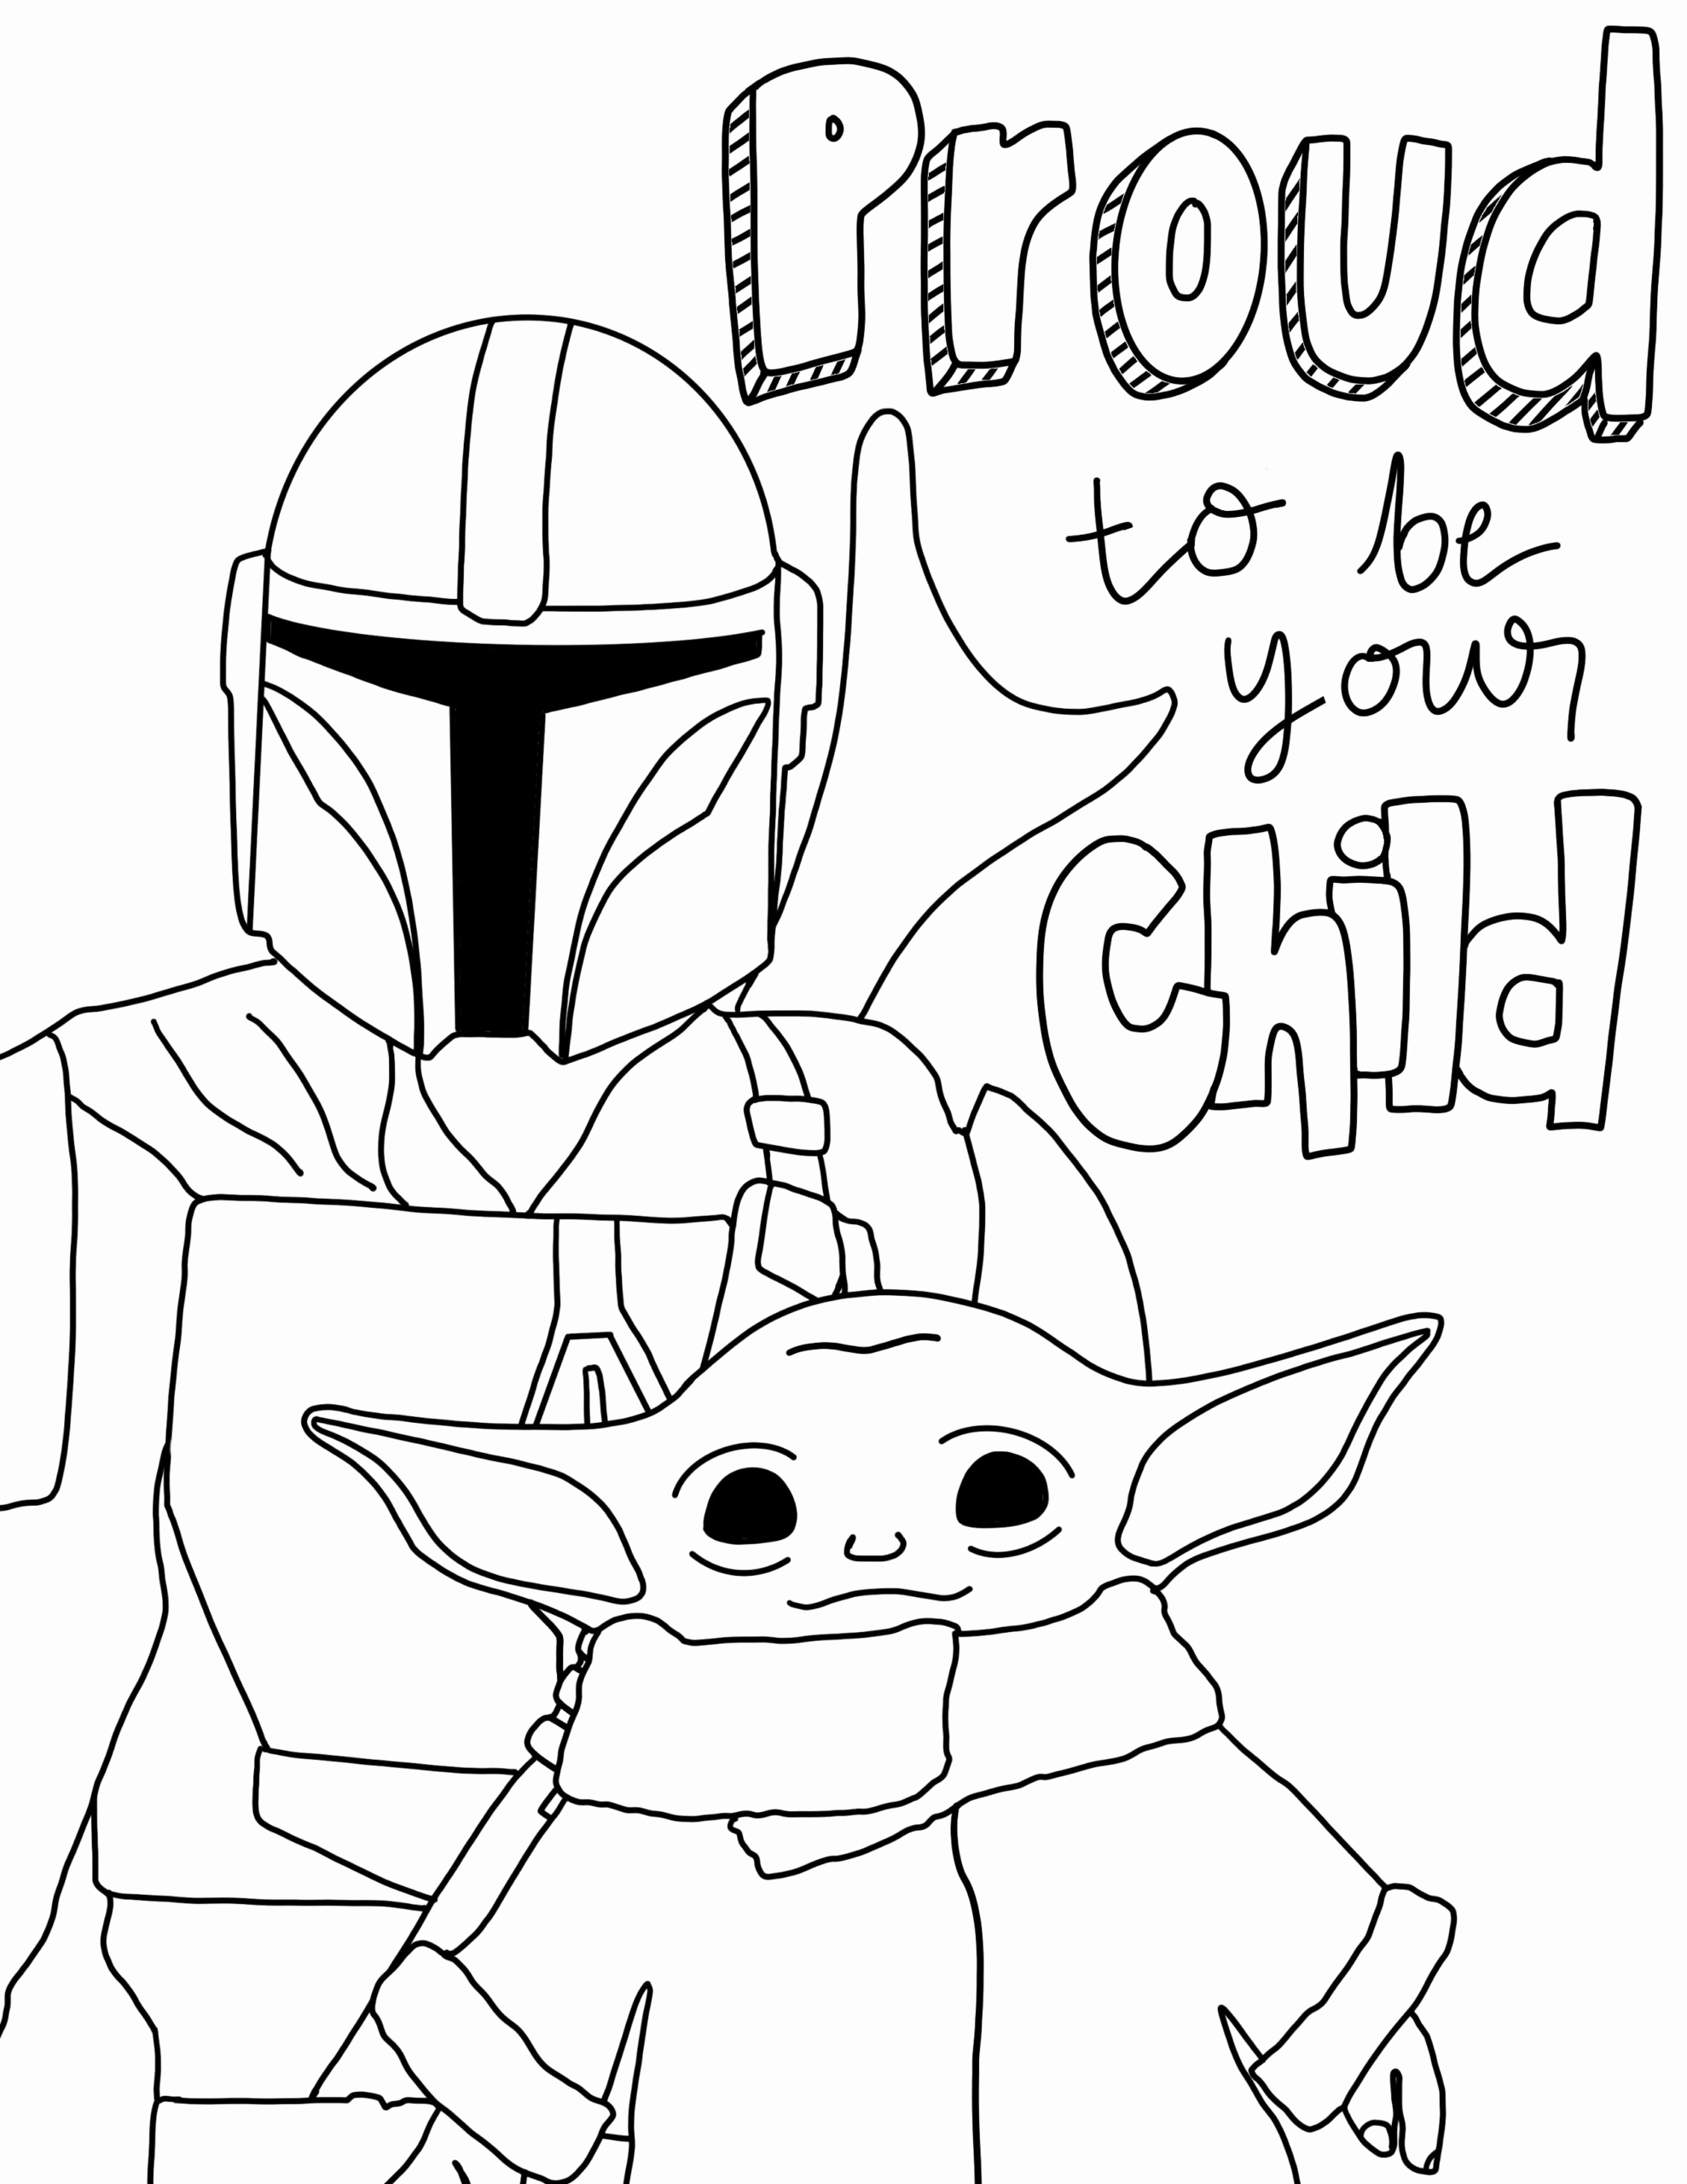 Free Printable Computer Keyboarding Worksheets Elegant Mandalorian Coloring Fathers Cards and Puter